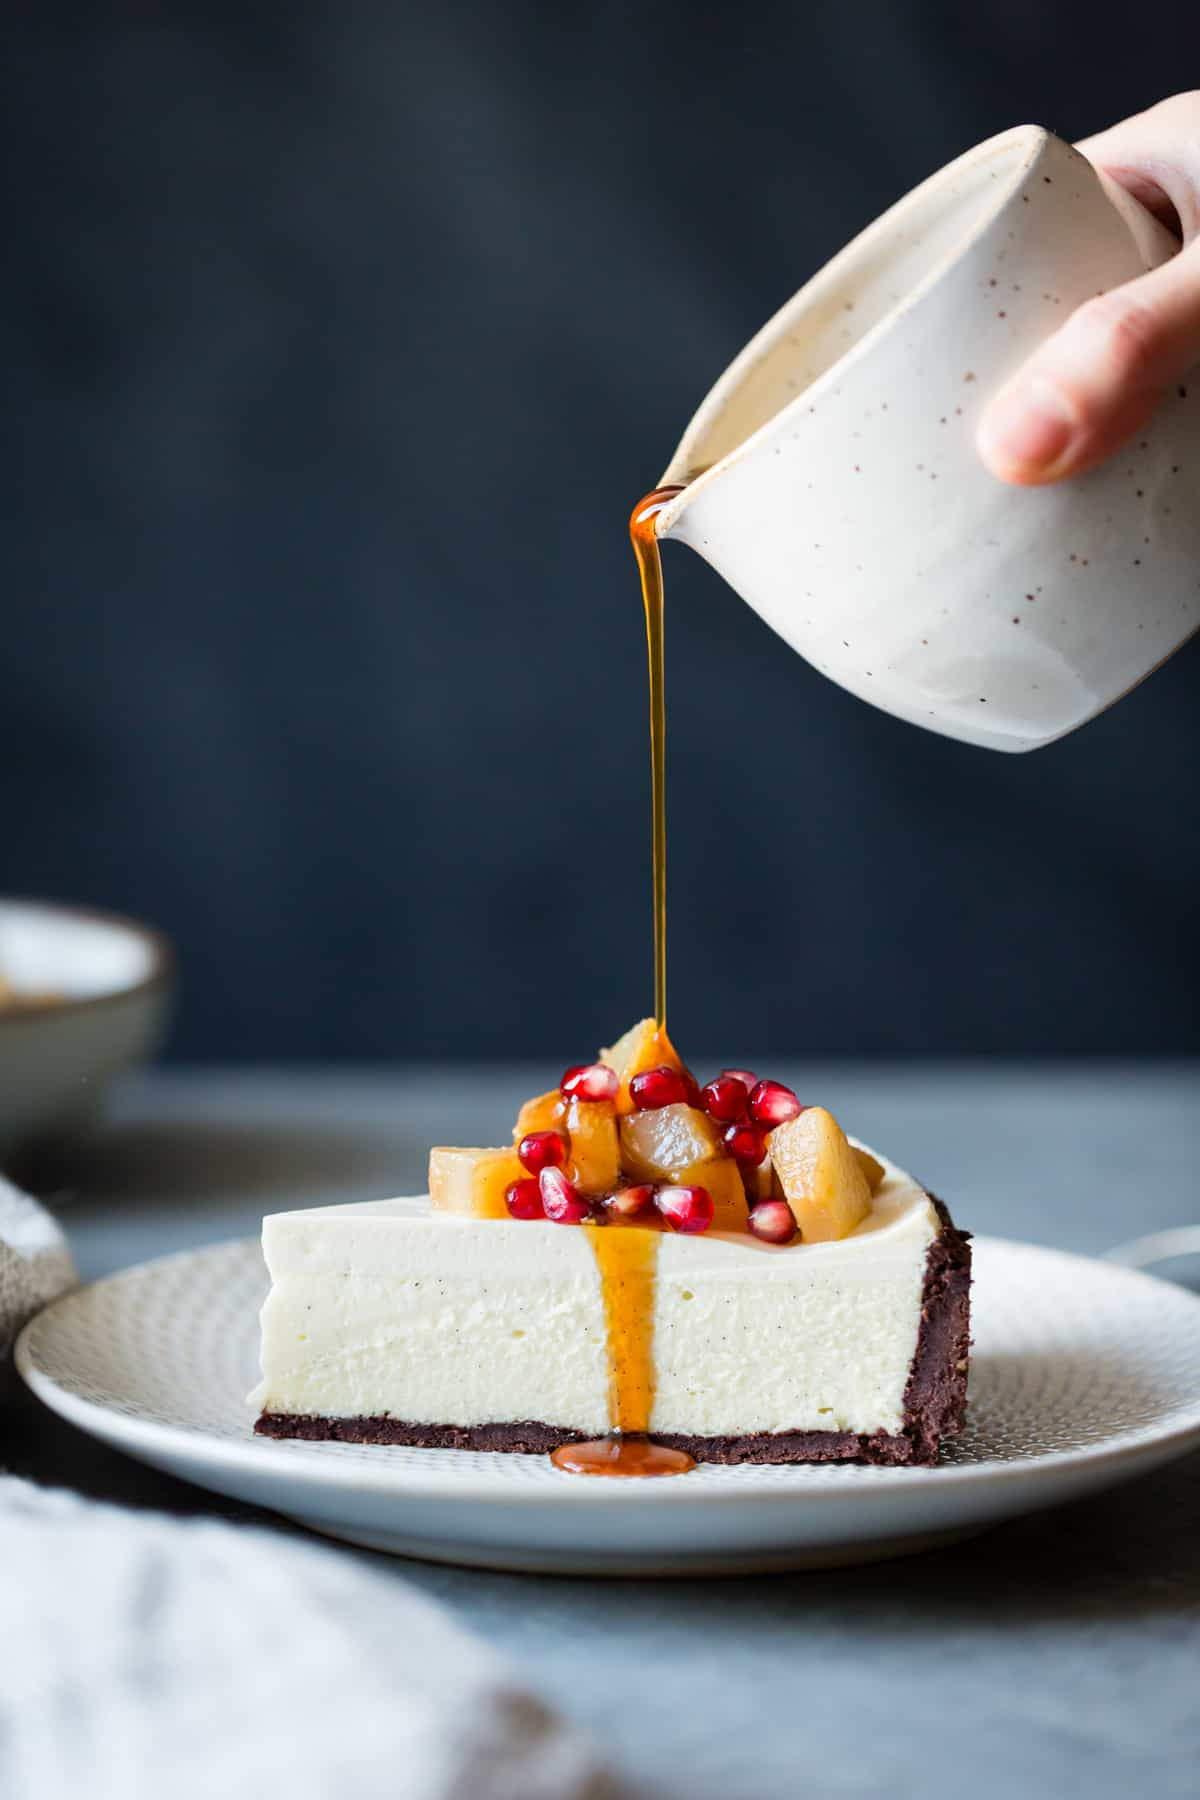 drizzling sauce on Chocolate Crusted Chèvre Cheesecake with Earl Grey Poached Pears & Pomegranate {gluten-free}